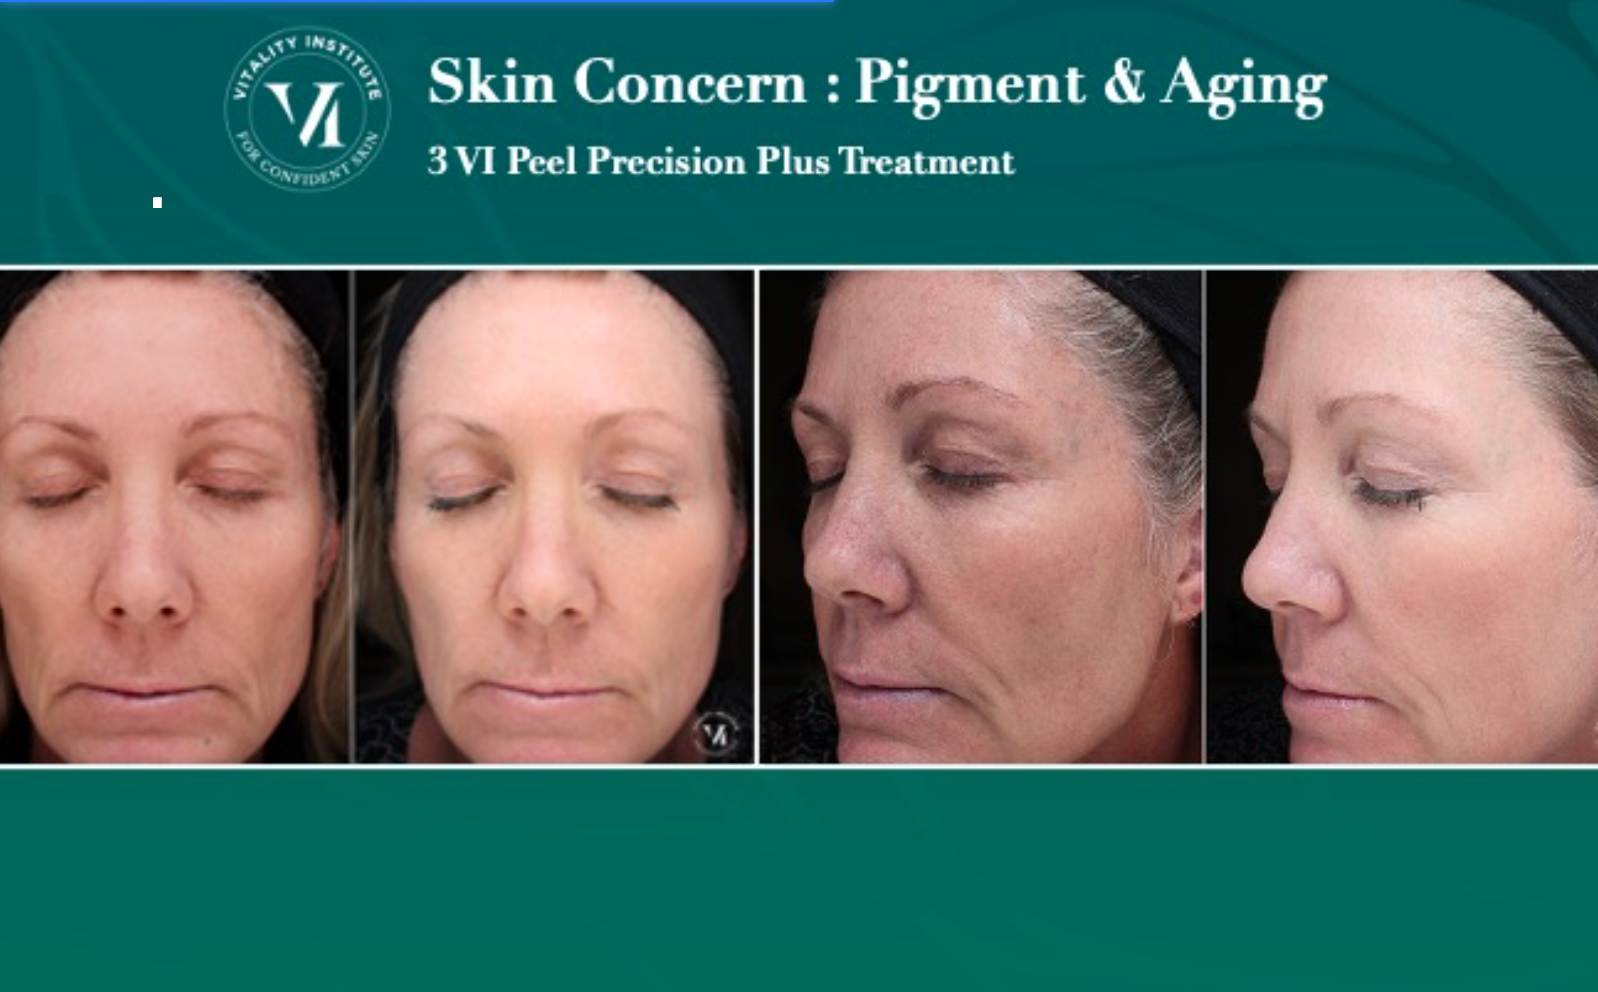 VI Peel Before and After 3